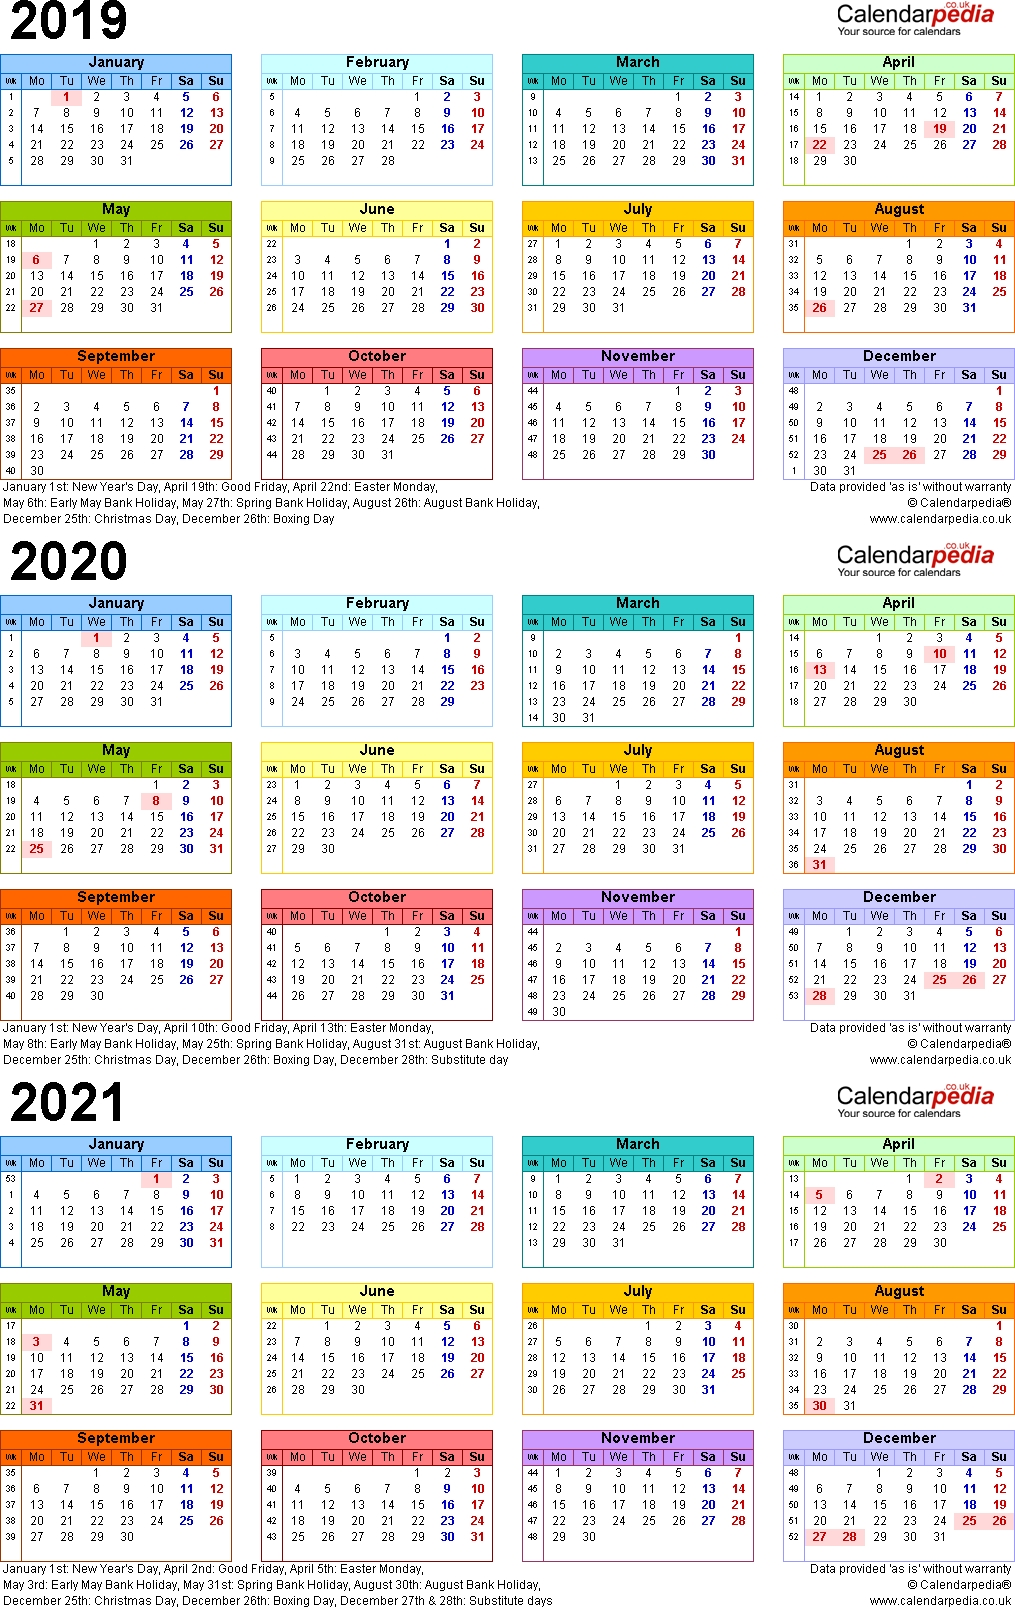 Three Year Calendars For 2019, 2020 & 2021 (Uk) For Word with regard to Three-Year Calendar 2019, 2020, 2021